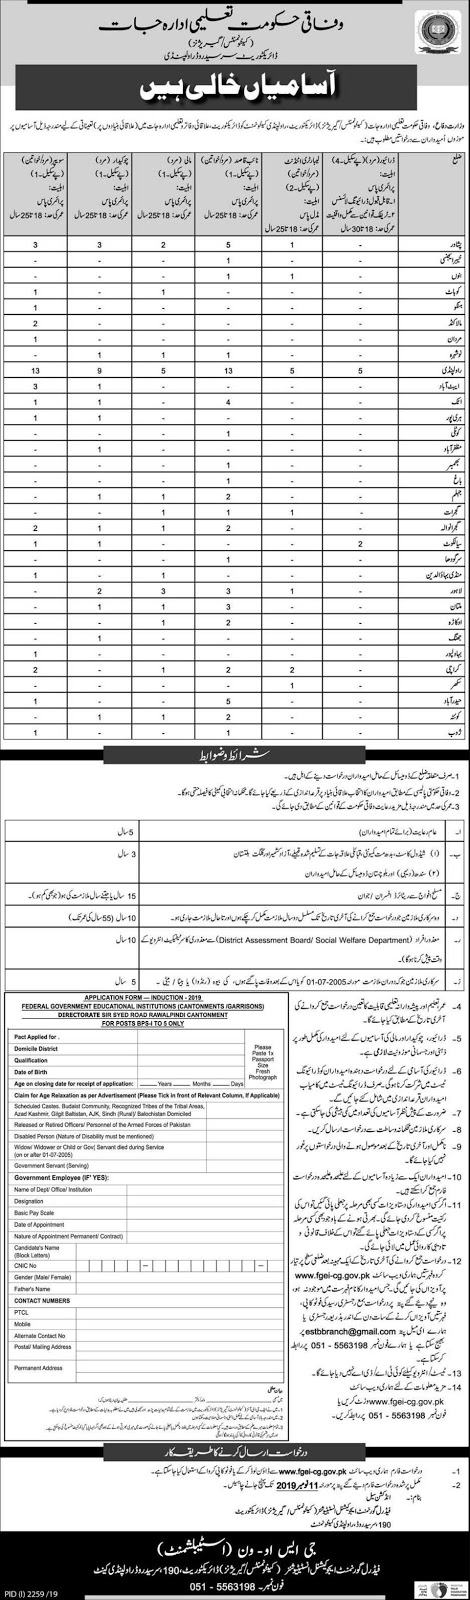 FGEI Jobs, Jobs in FGEI CTS Application form download